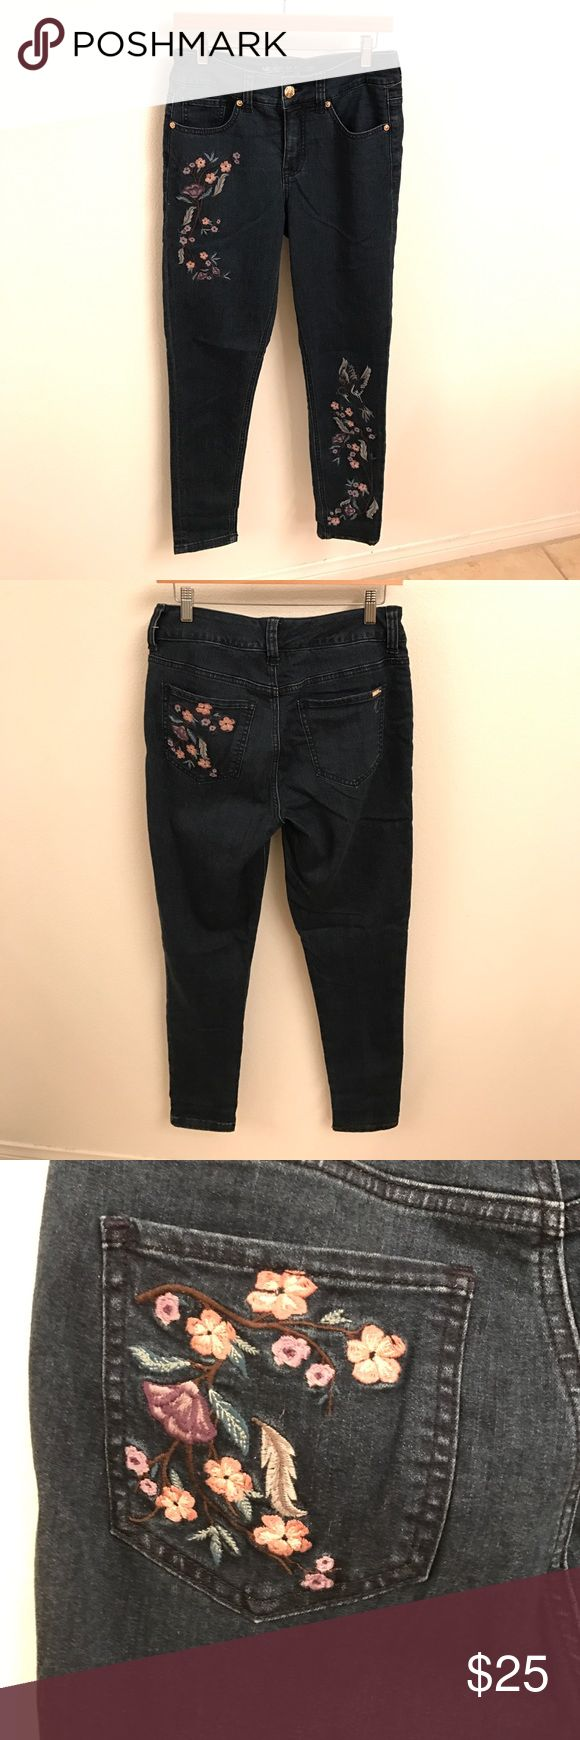 Melissa McCarthy embroidered denim Medium blue wash w/ floral embroidery. New/no tags. Melissa McCarthy Pants Skinny